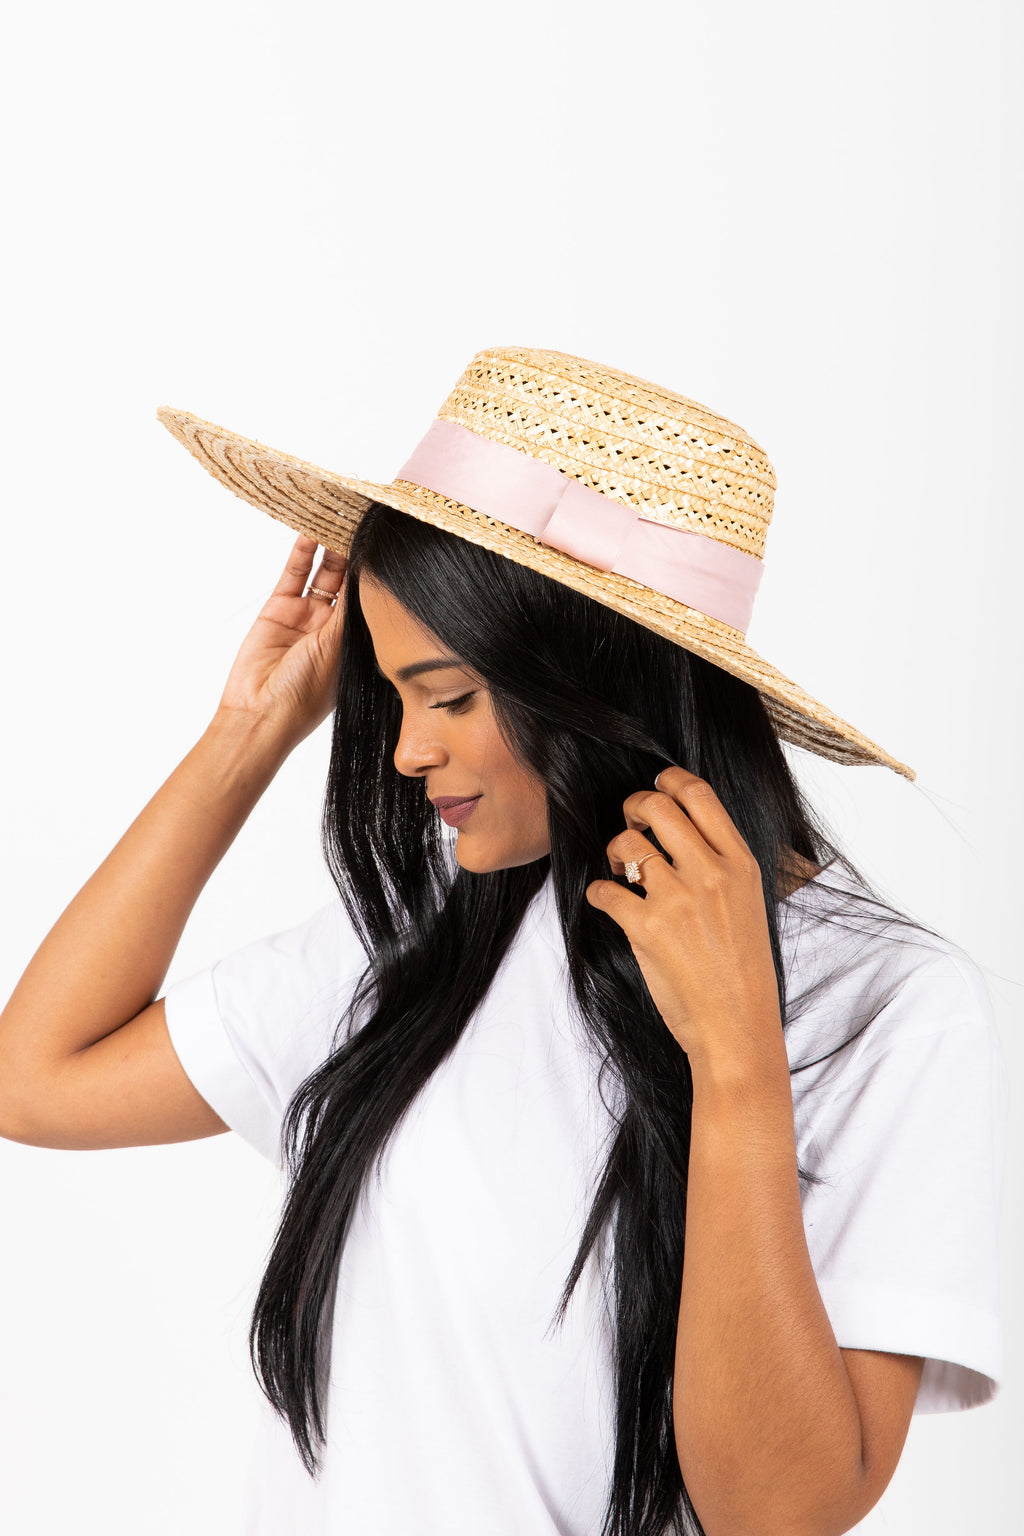 Hat No. 21: The Straw Brim Boater in Blush